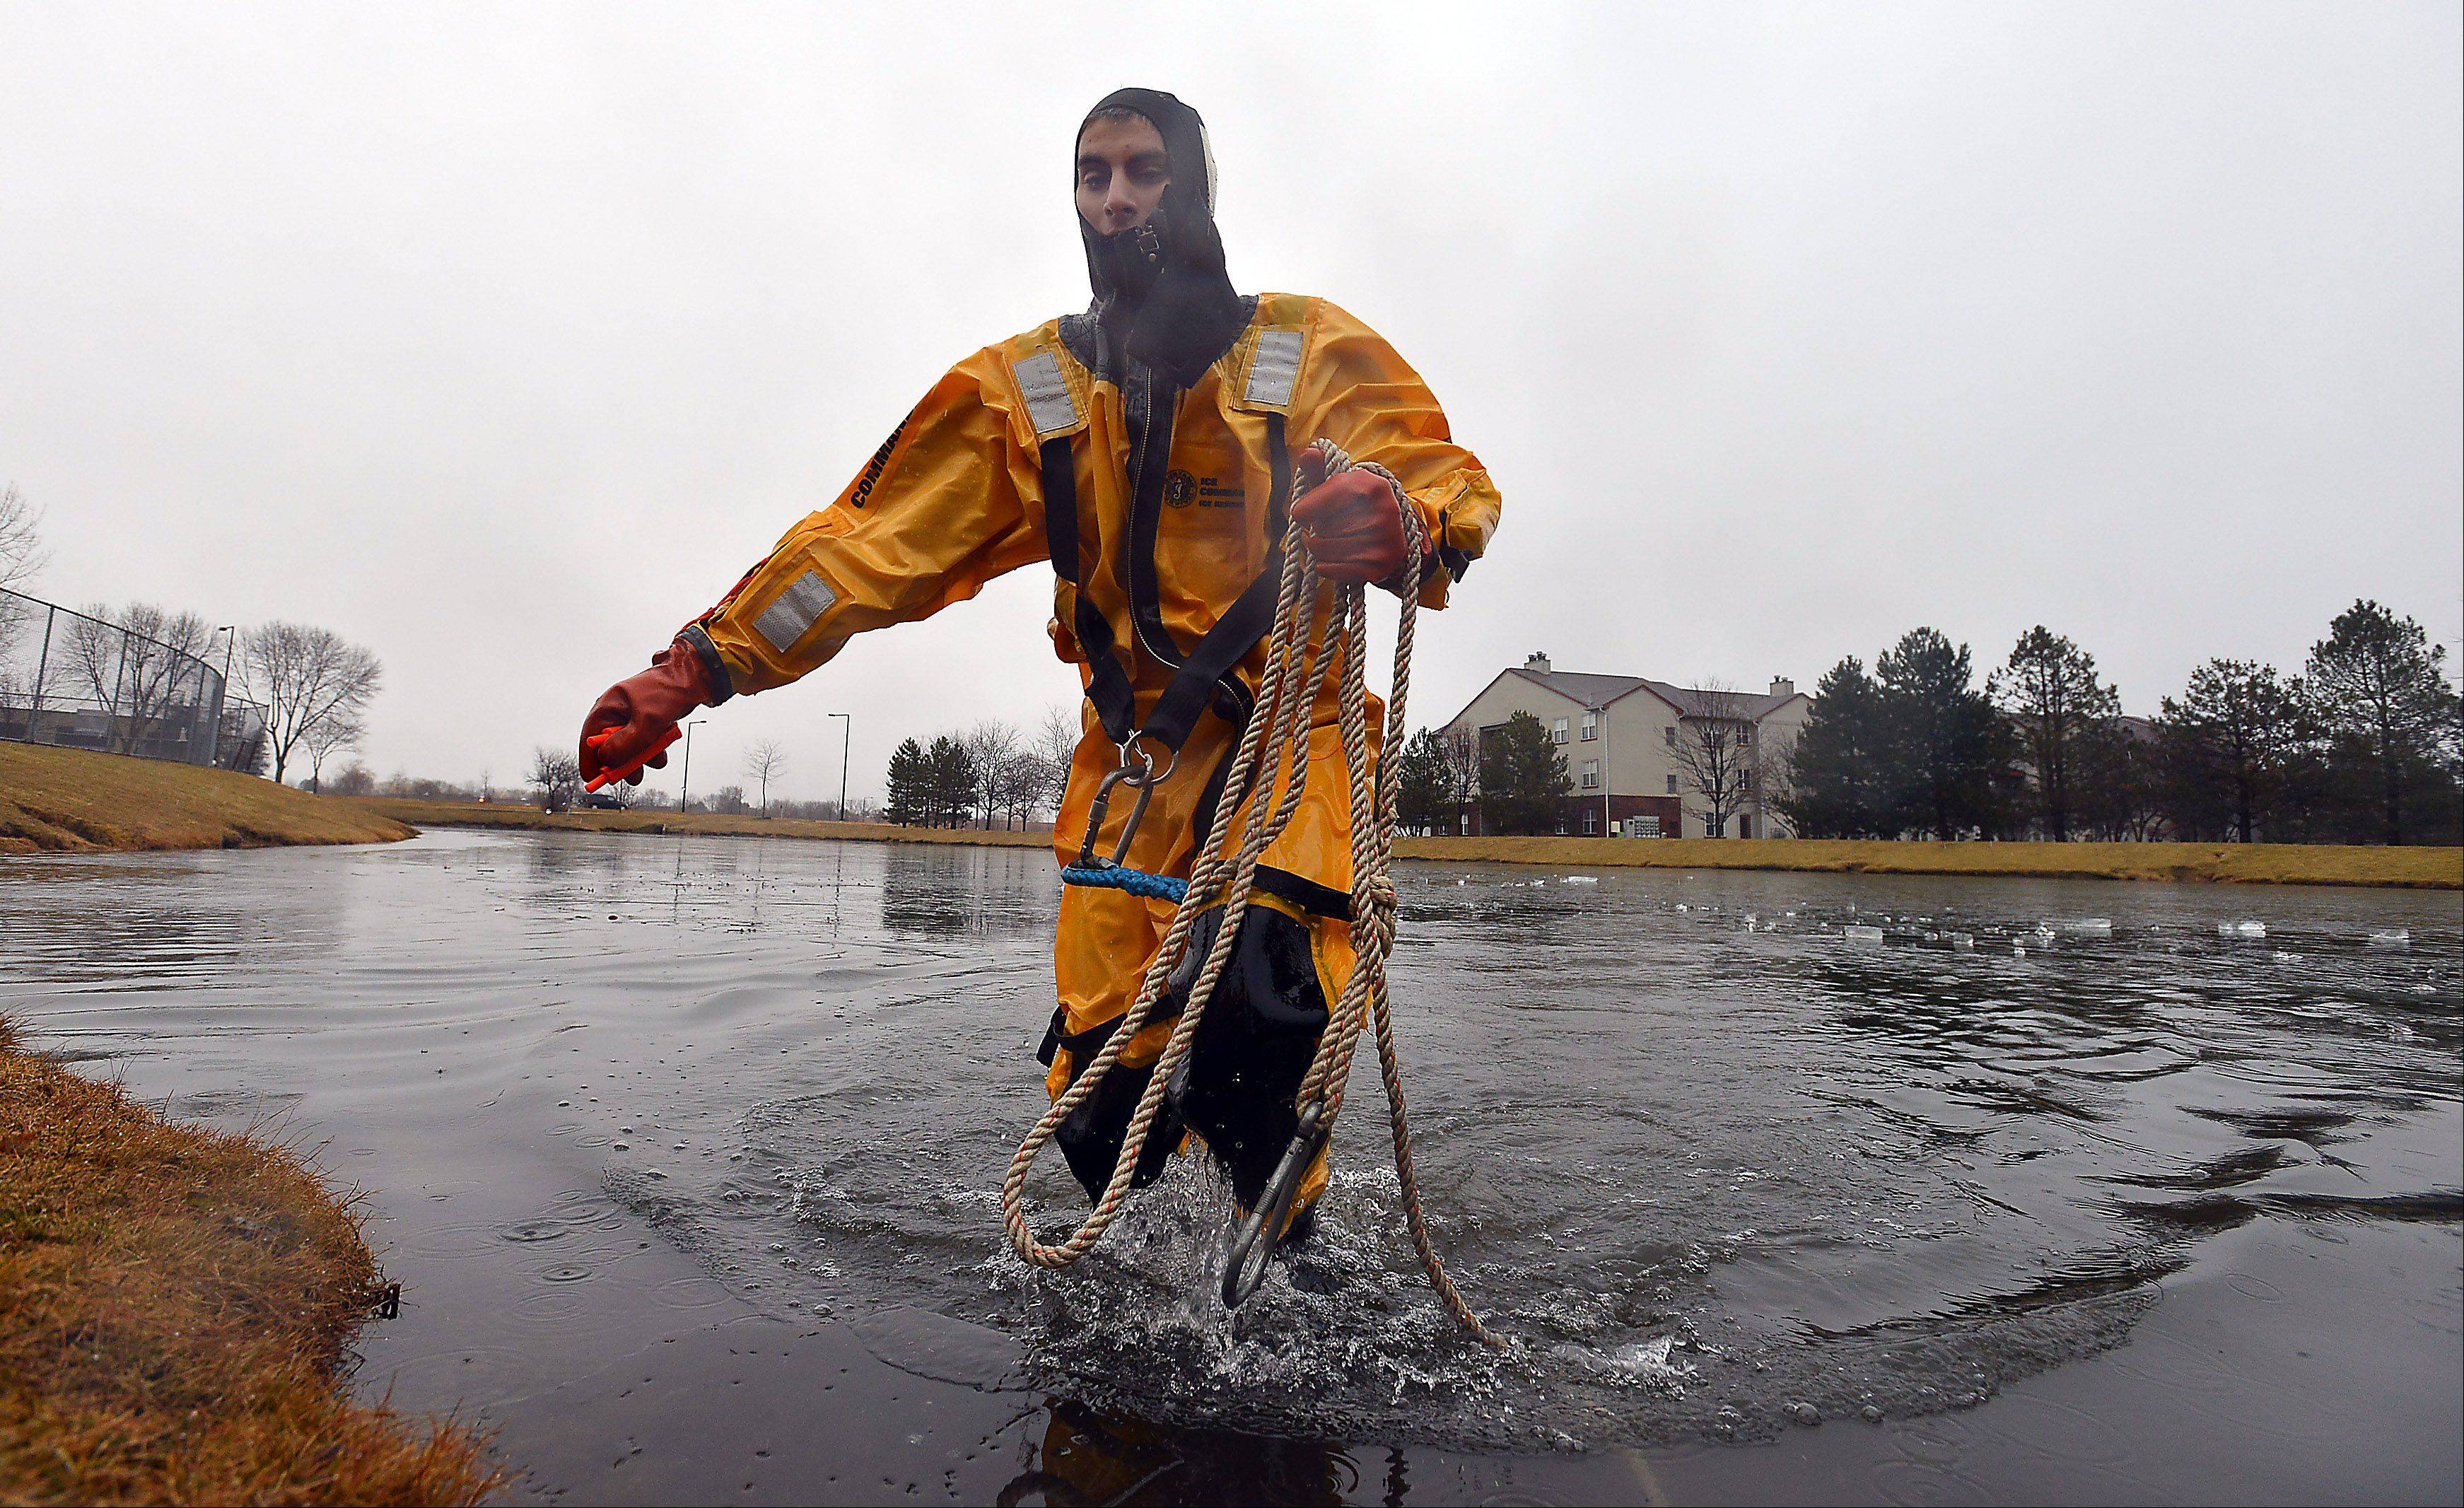 Paid on Call rookie firefighter Kyle Schrems from Lincolnshire made his first ice rescue braving the 30 degree plus temperature at the retention pond located next to the Combined Area Fire Training Facility in Buffalo Grove on Wednesday.